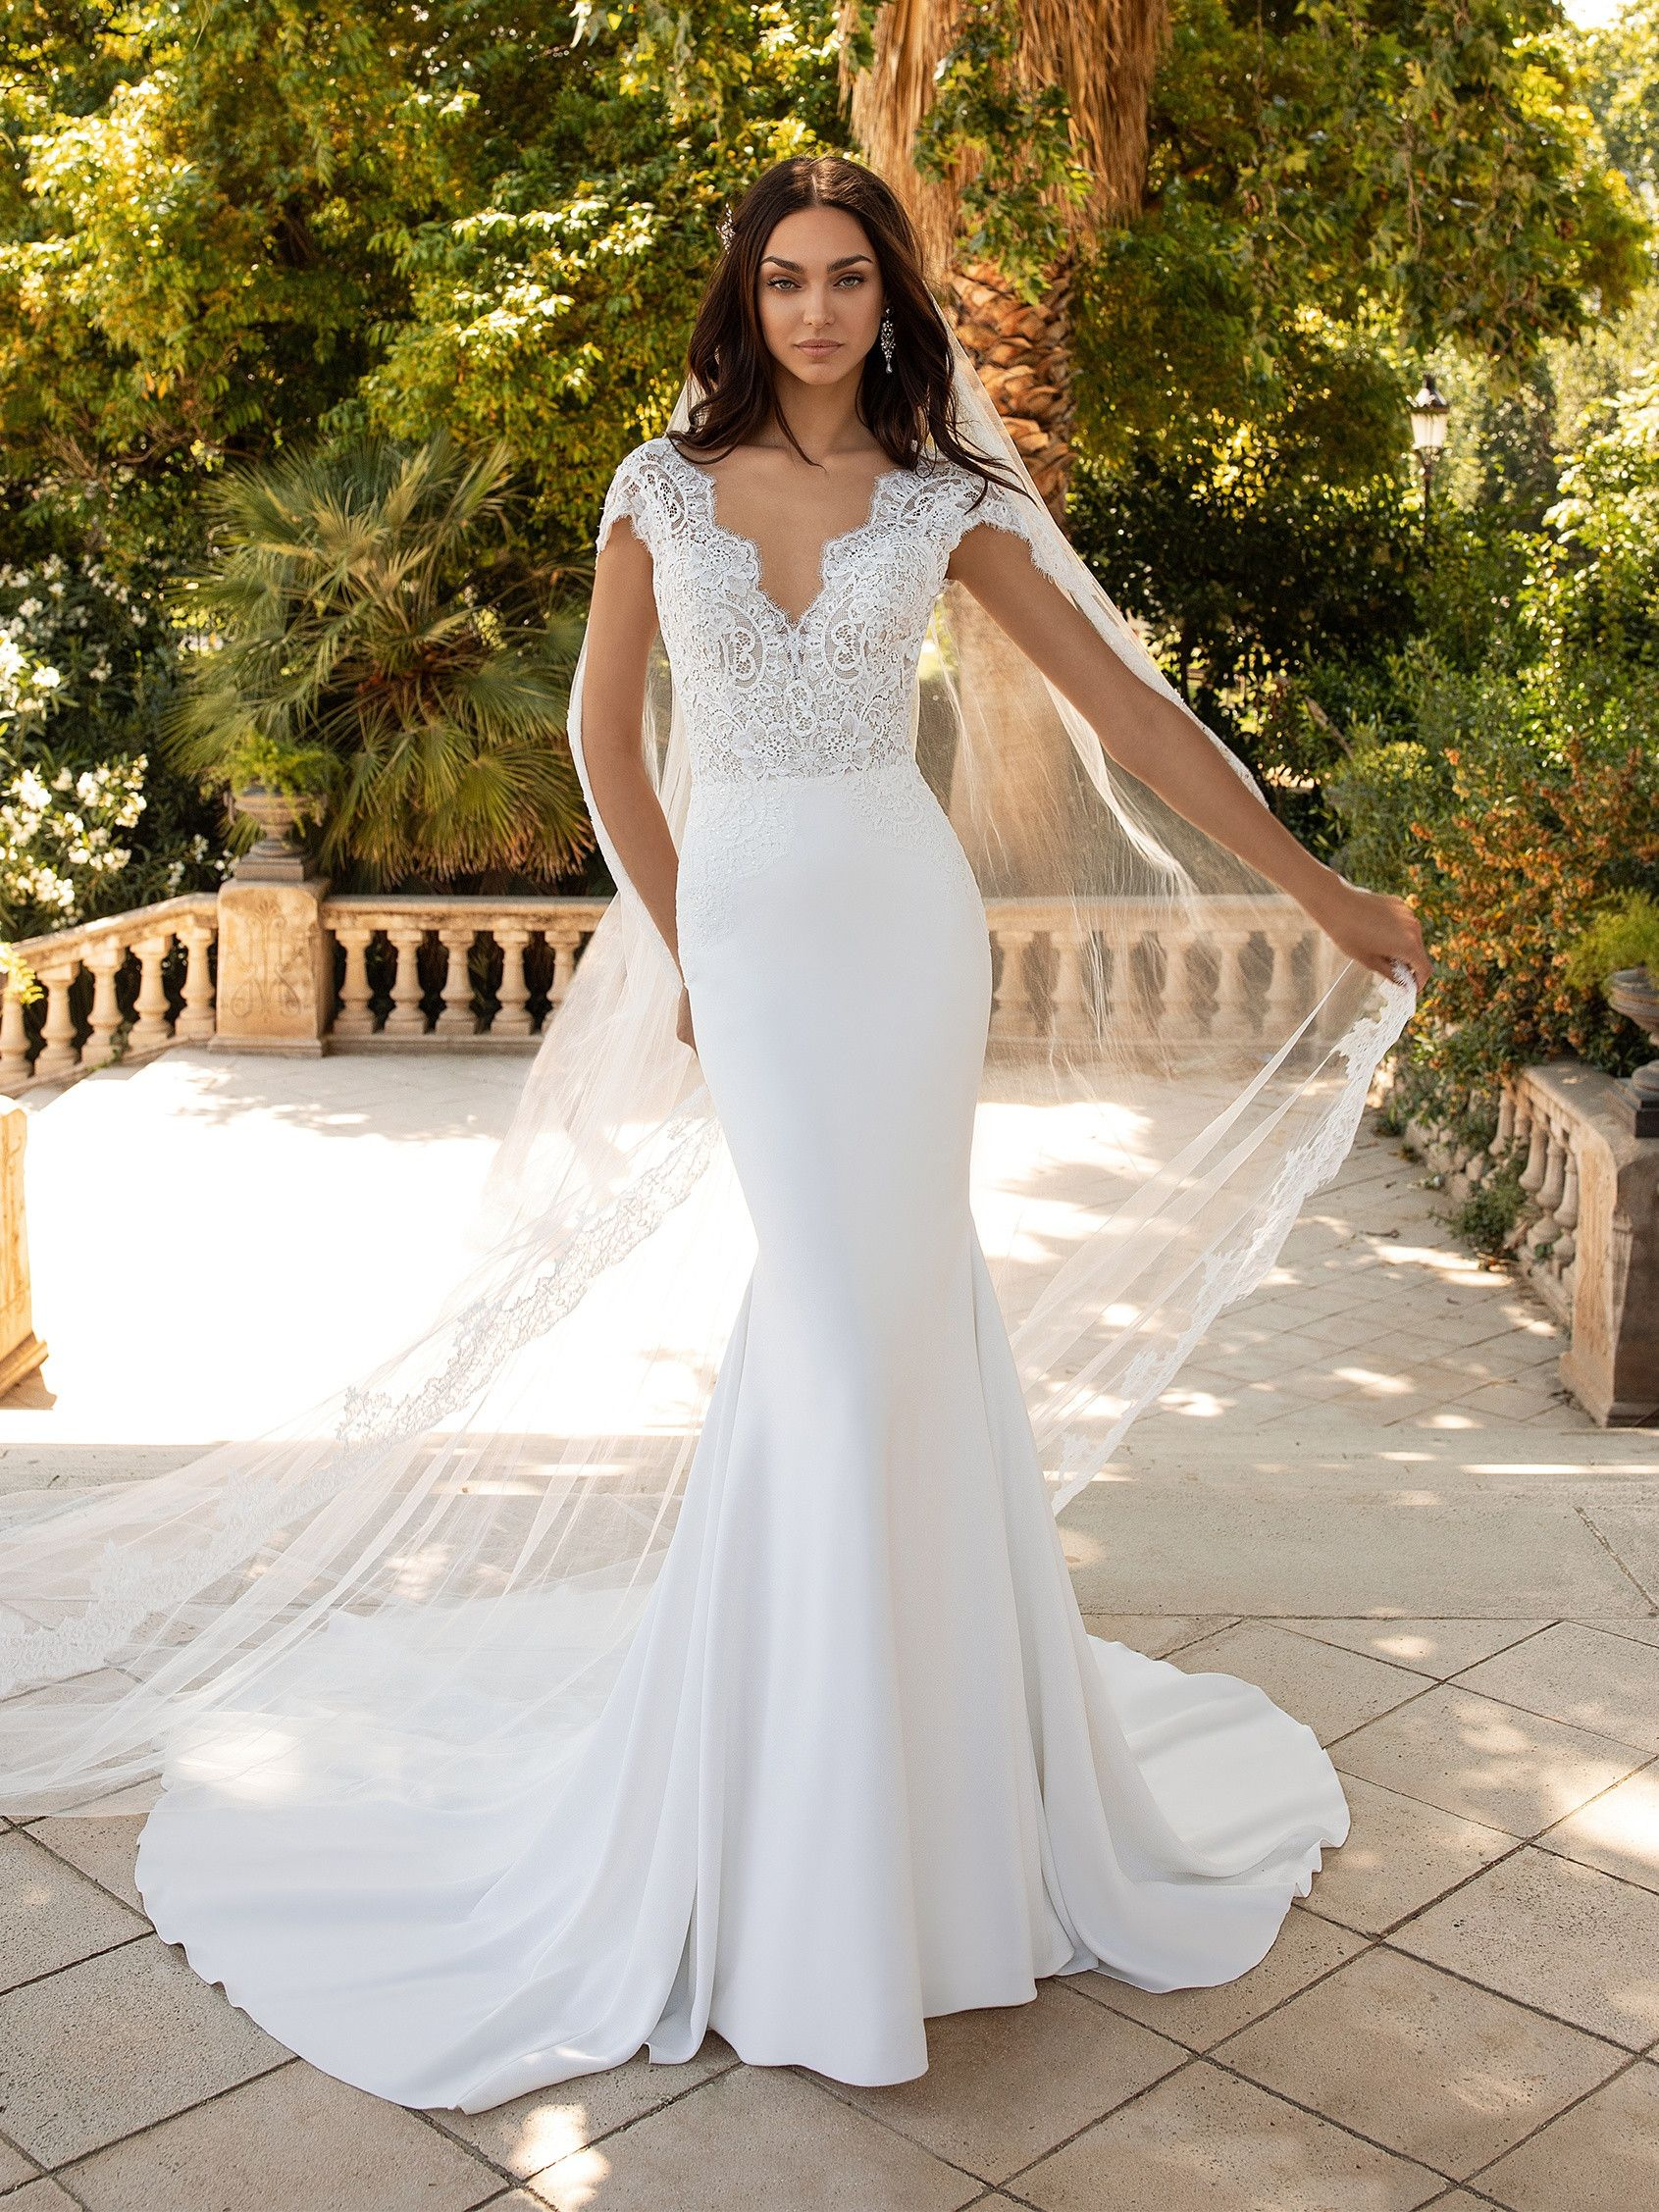 Milady Is An Elegant Crepe Wedding Dress With Lace Bodice V Neck And Short Sleeves Adorned Pronovias Wedding Dress Mermaid Wedding Dress Lovely Wedding Dress [ 2255 x 1691 Pixel ]